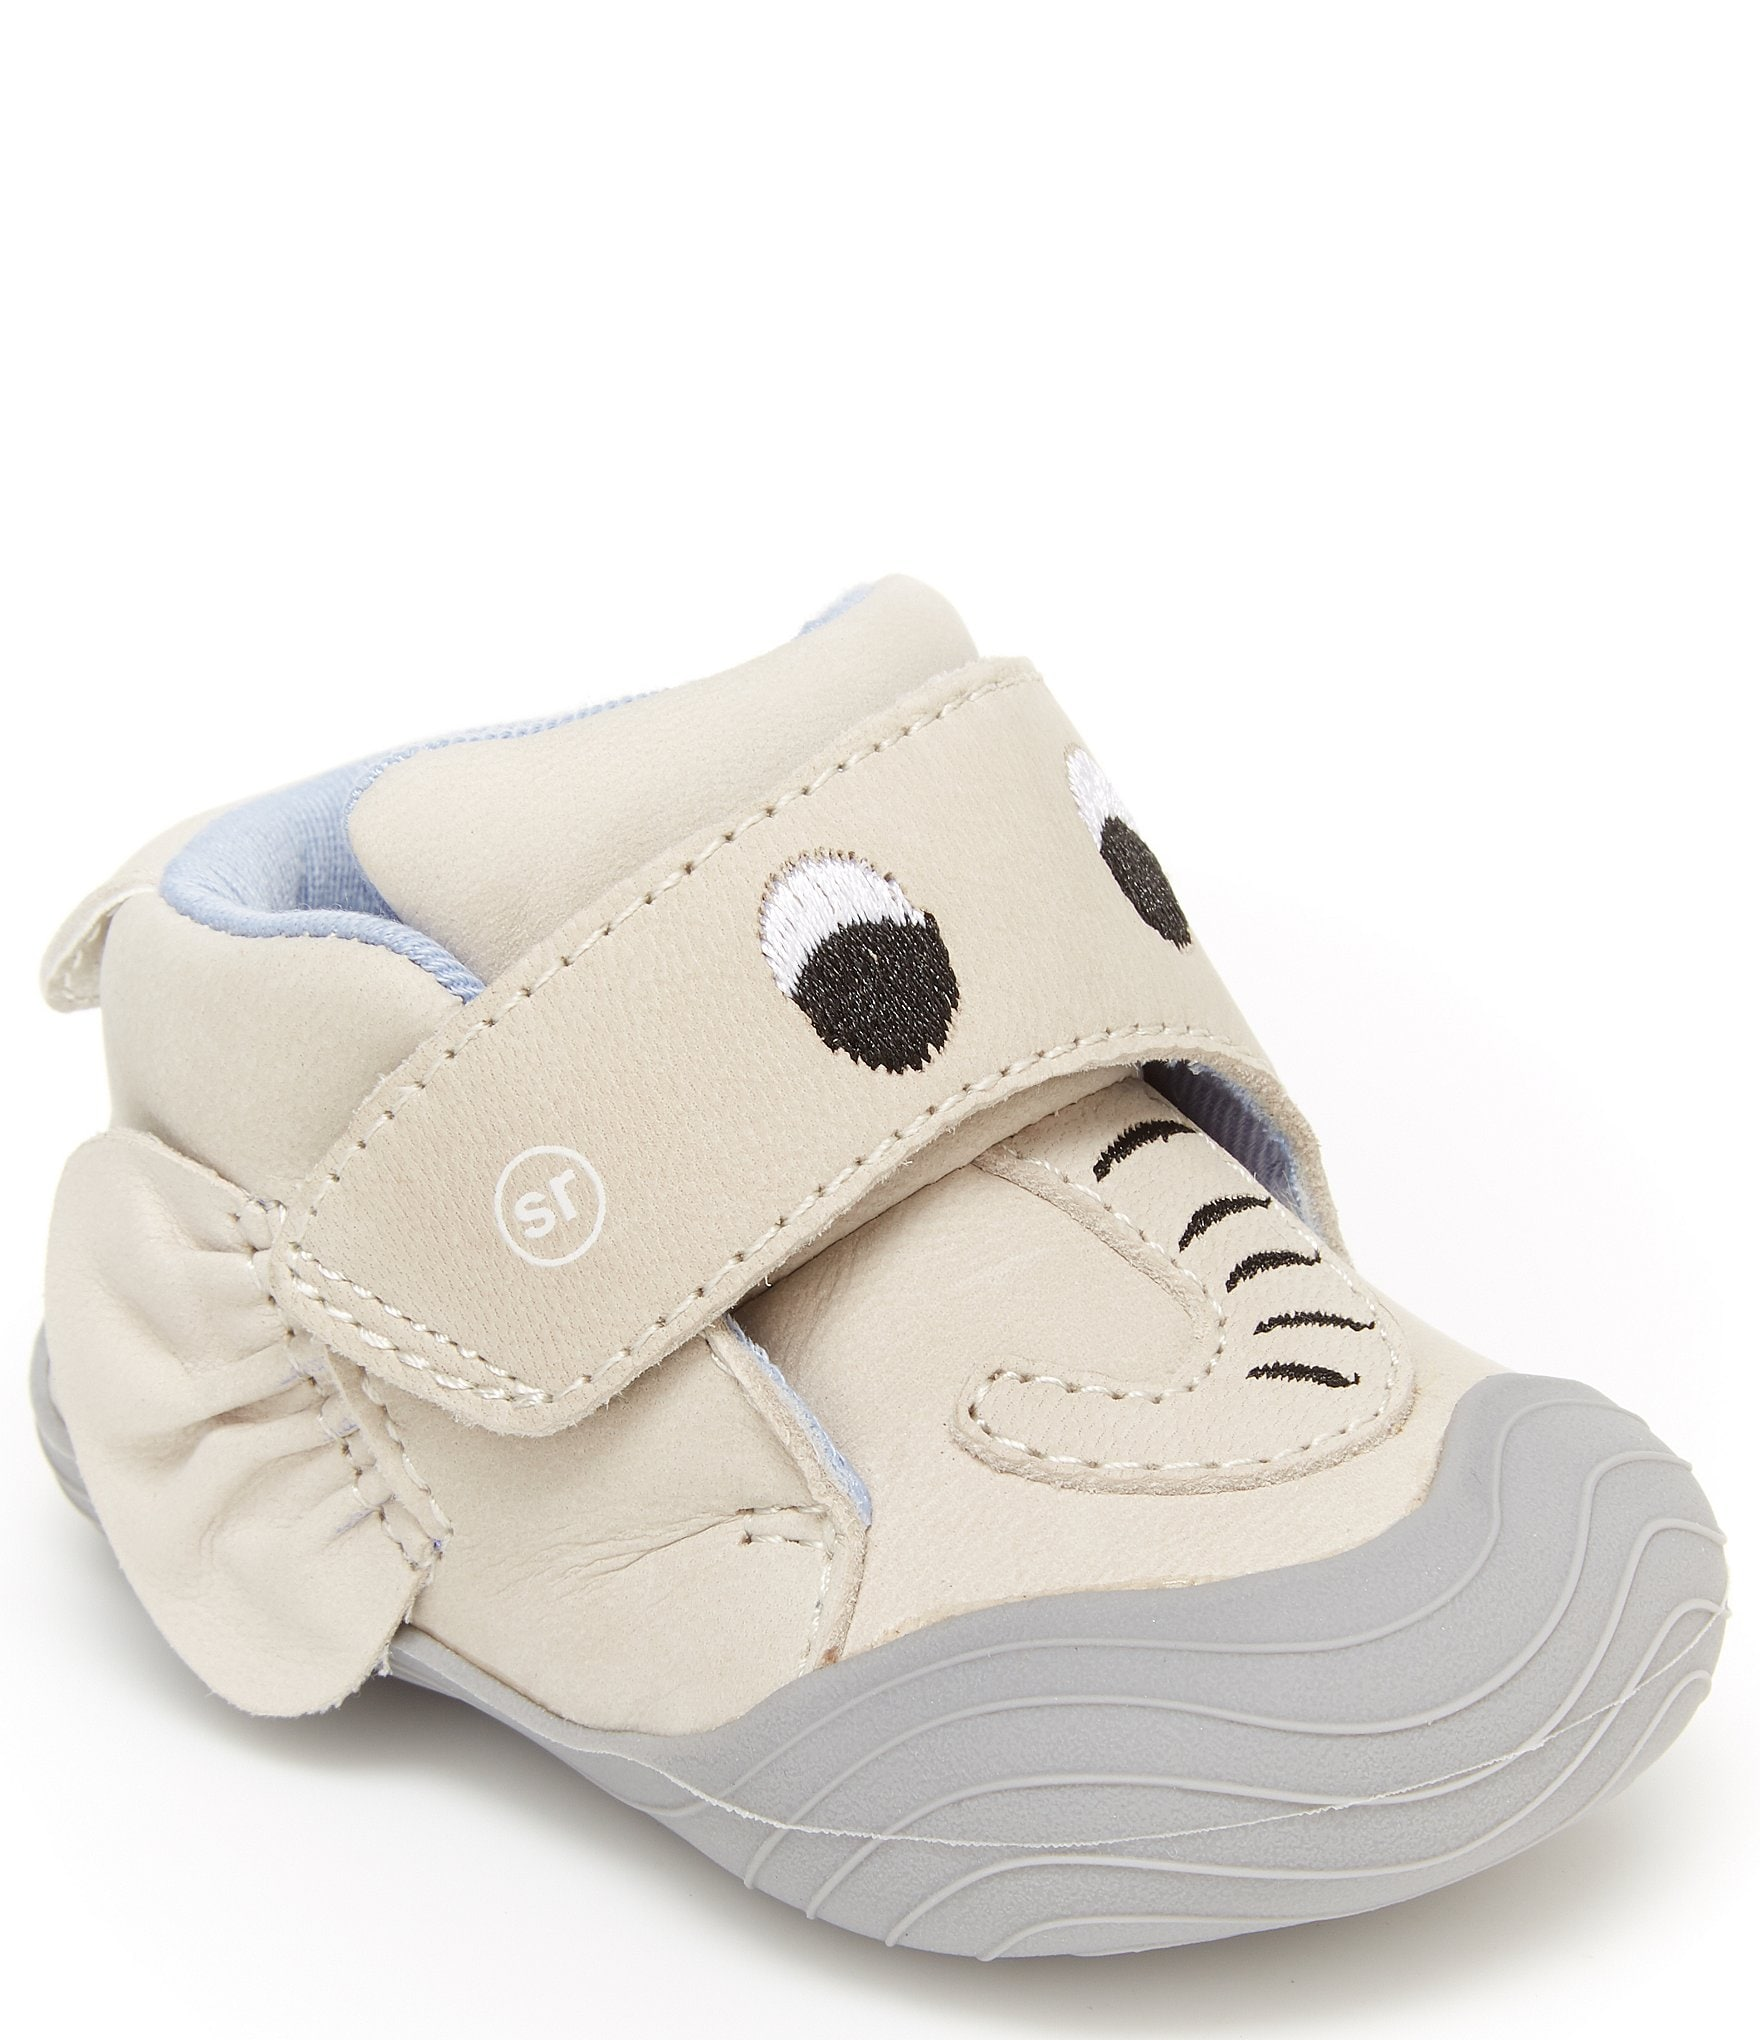 Stride Rite Kids' Campbell Leather